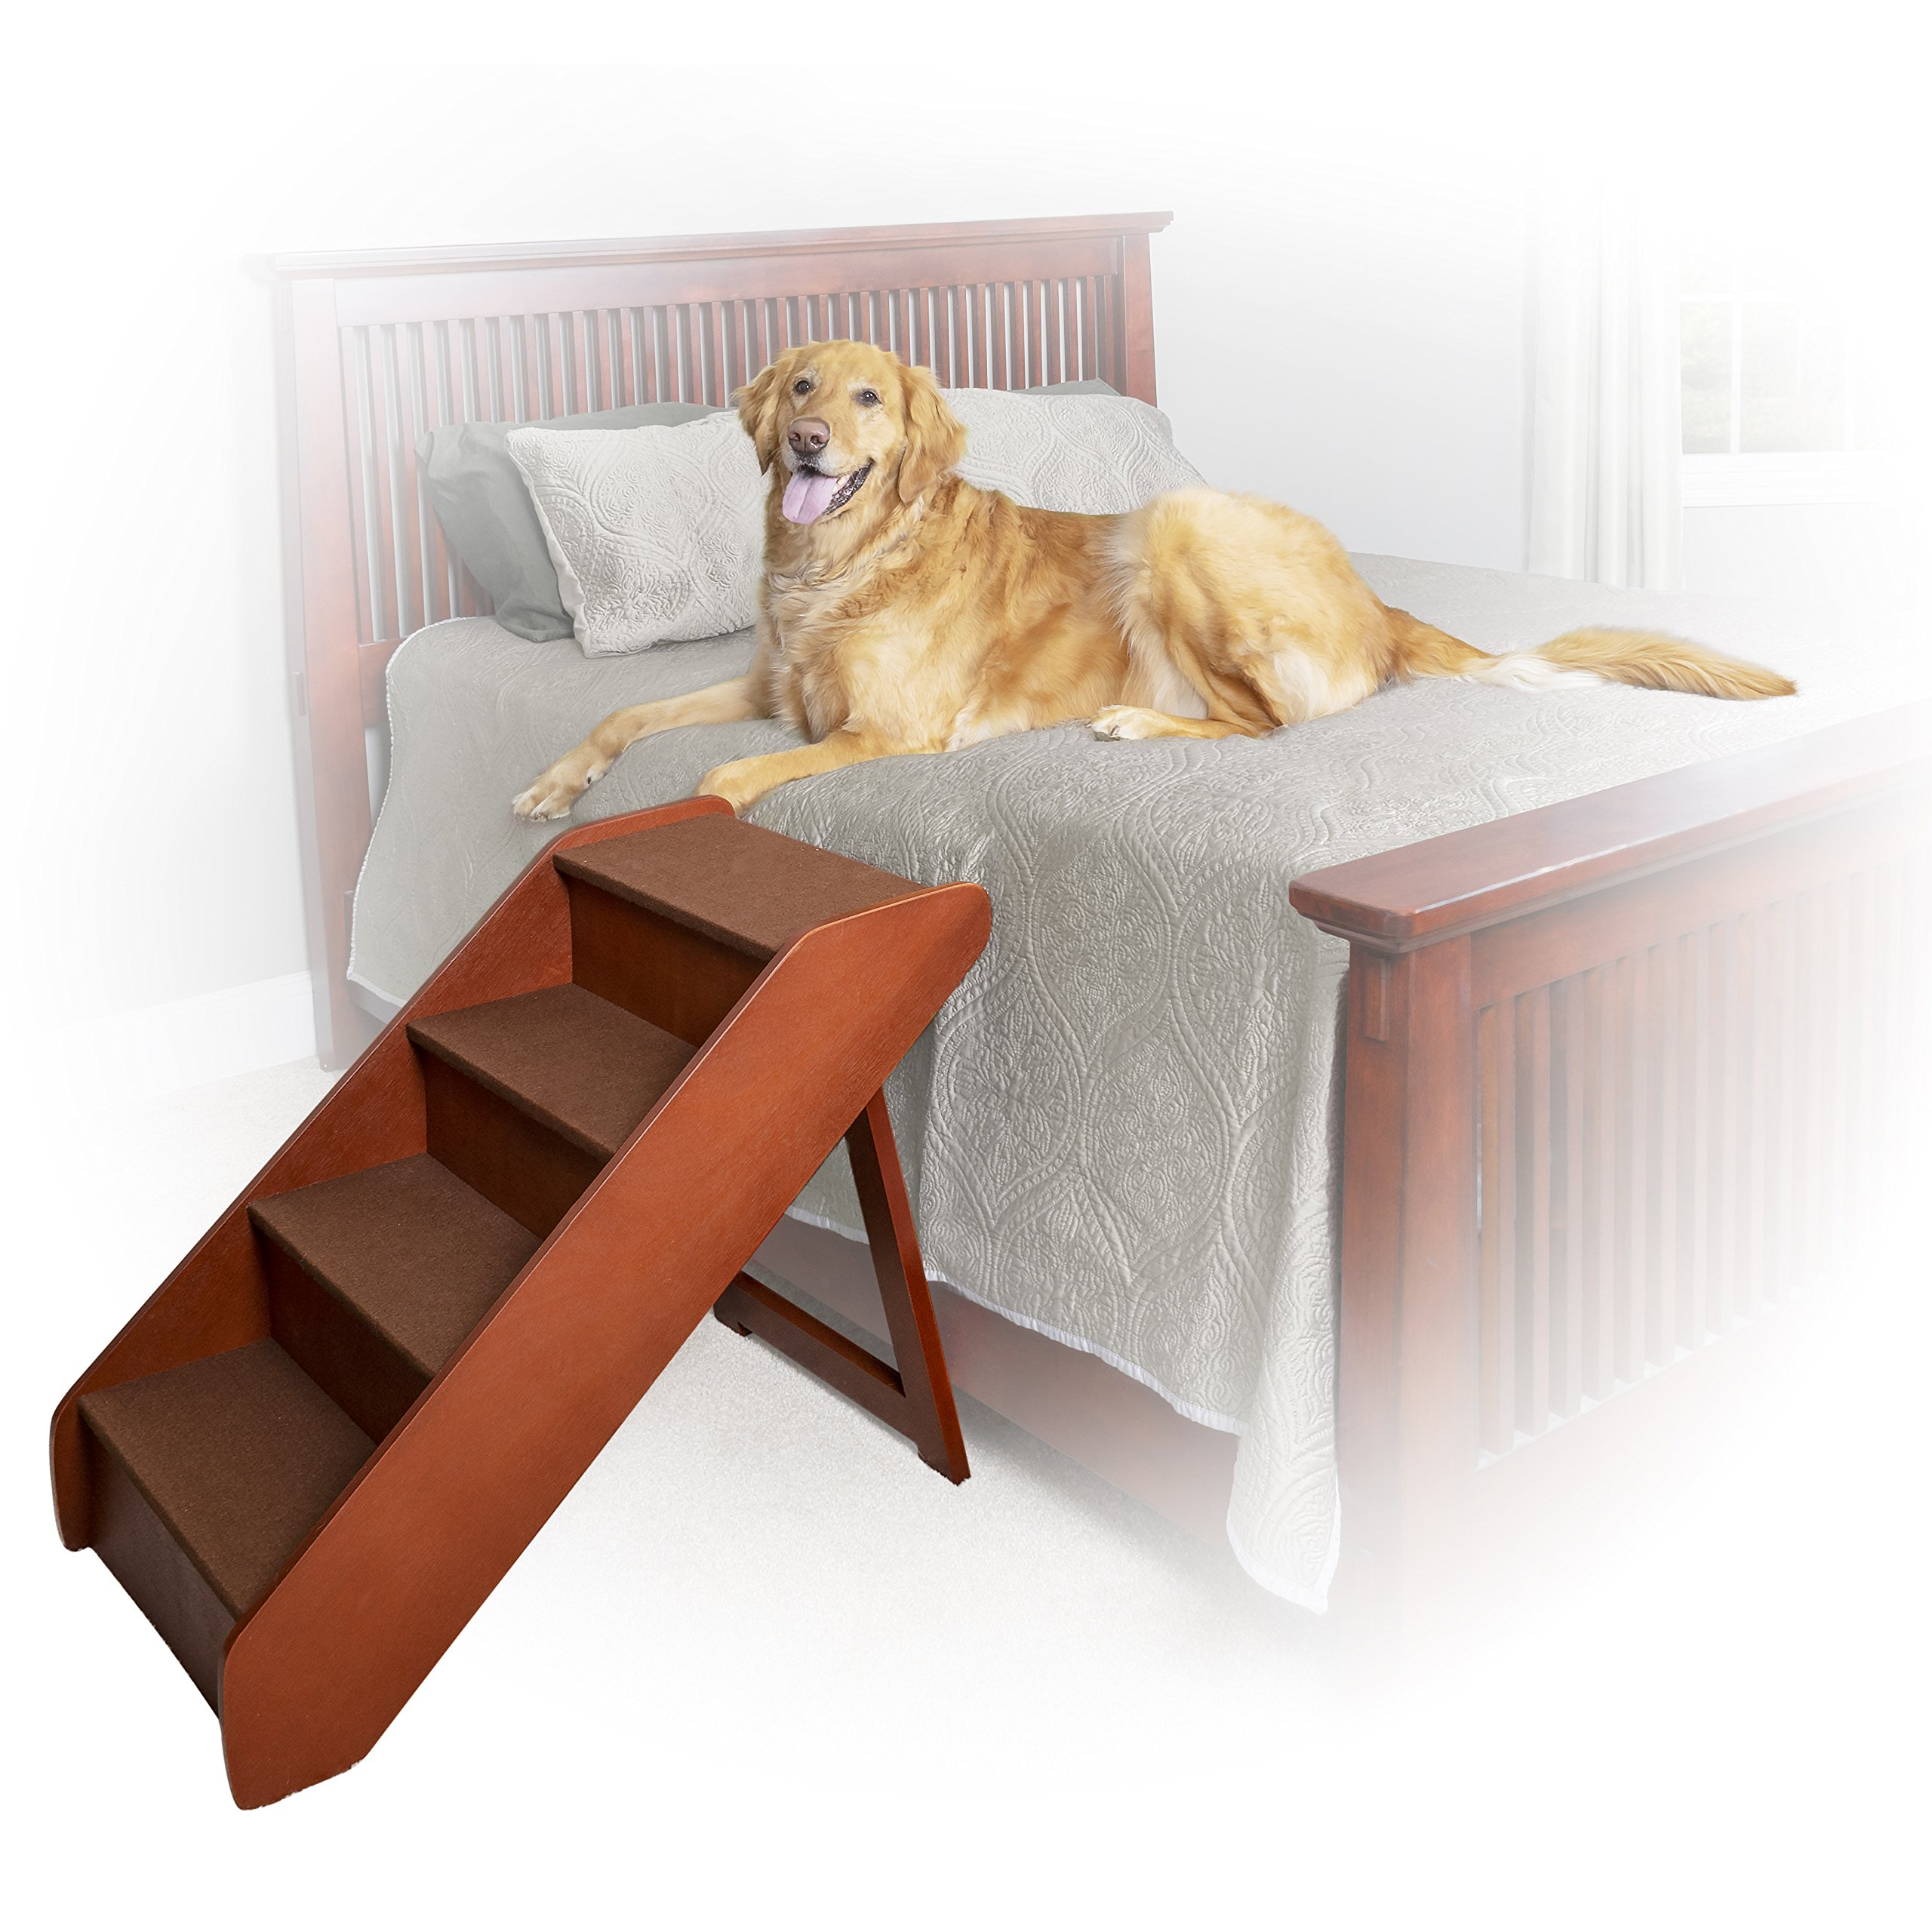 PetSafe Solvit PupSTEP Wood Pet Stairs, X-Large, Foldable Steps for Dogs and Cats, Best for Medium to Large Pets